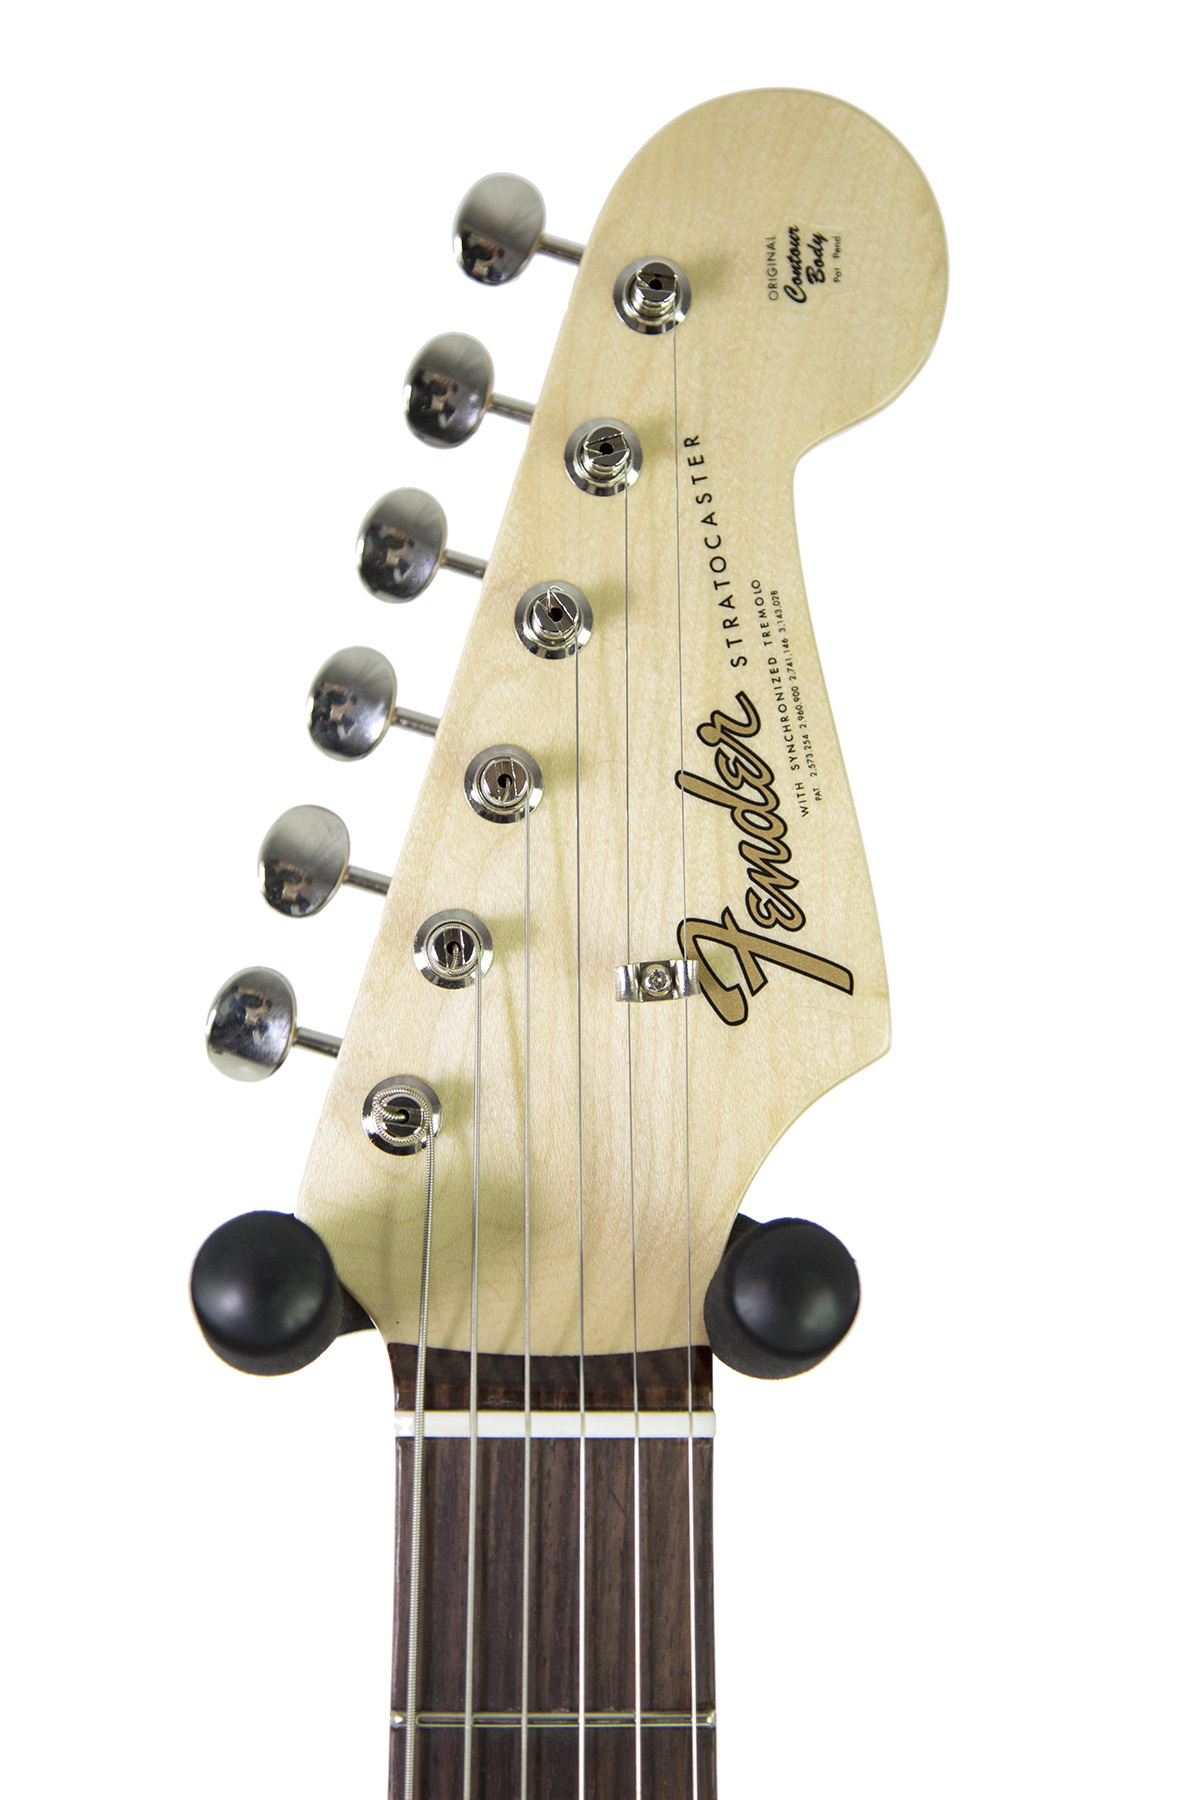 brand new fender american original 39 60s stratocaster electric guitar new york music emporium. Black Bedroom Furniture Sets. Home Design Ideas